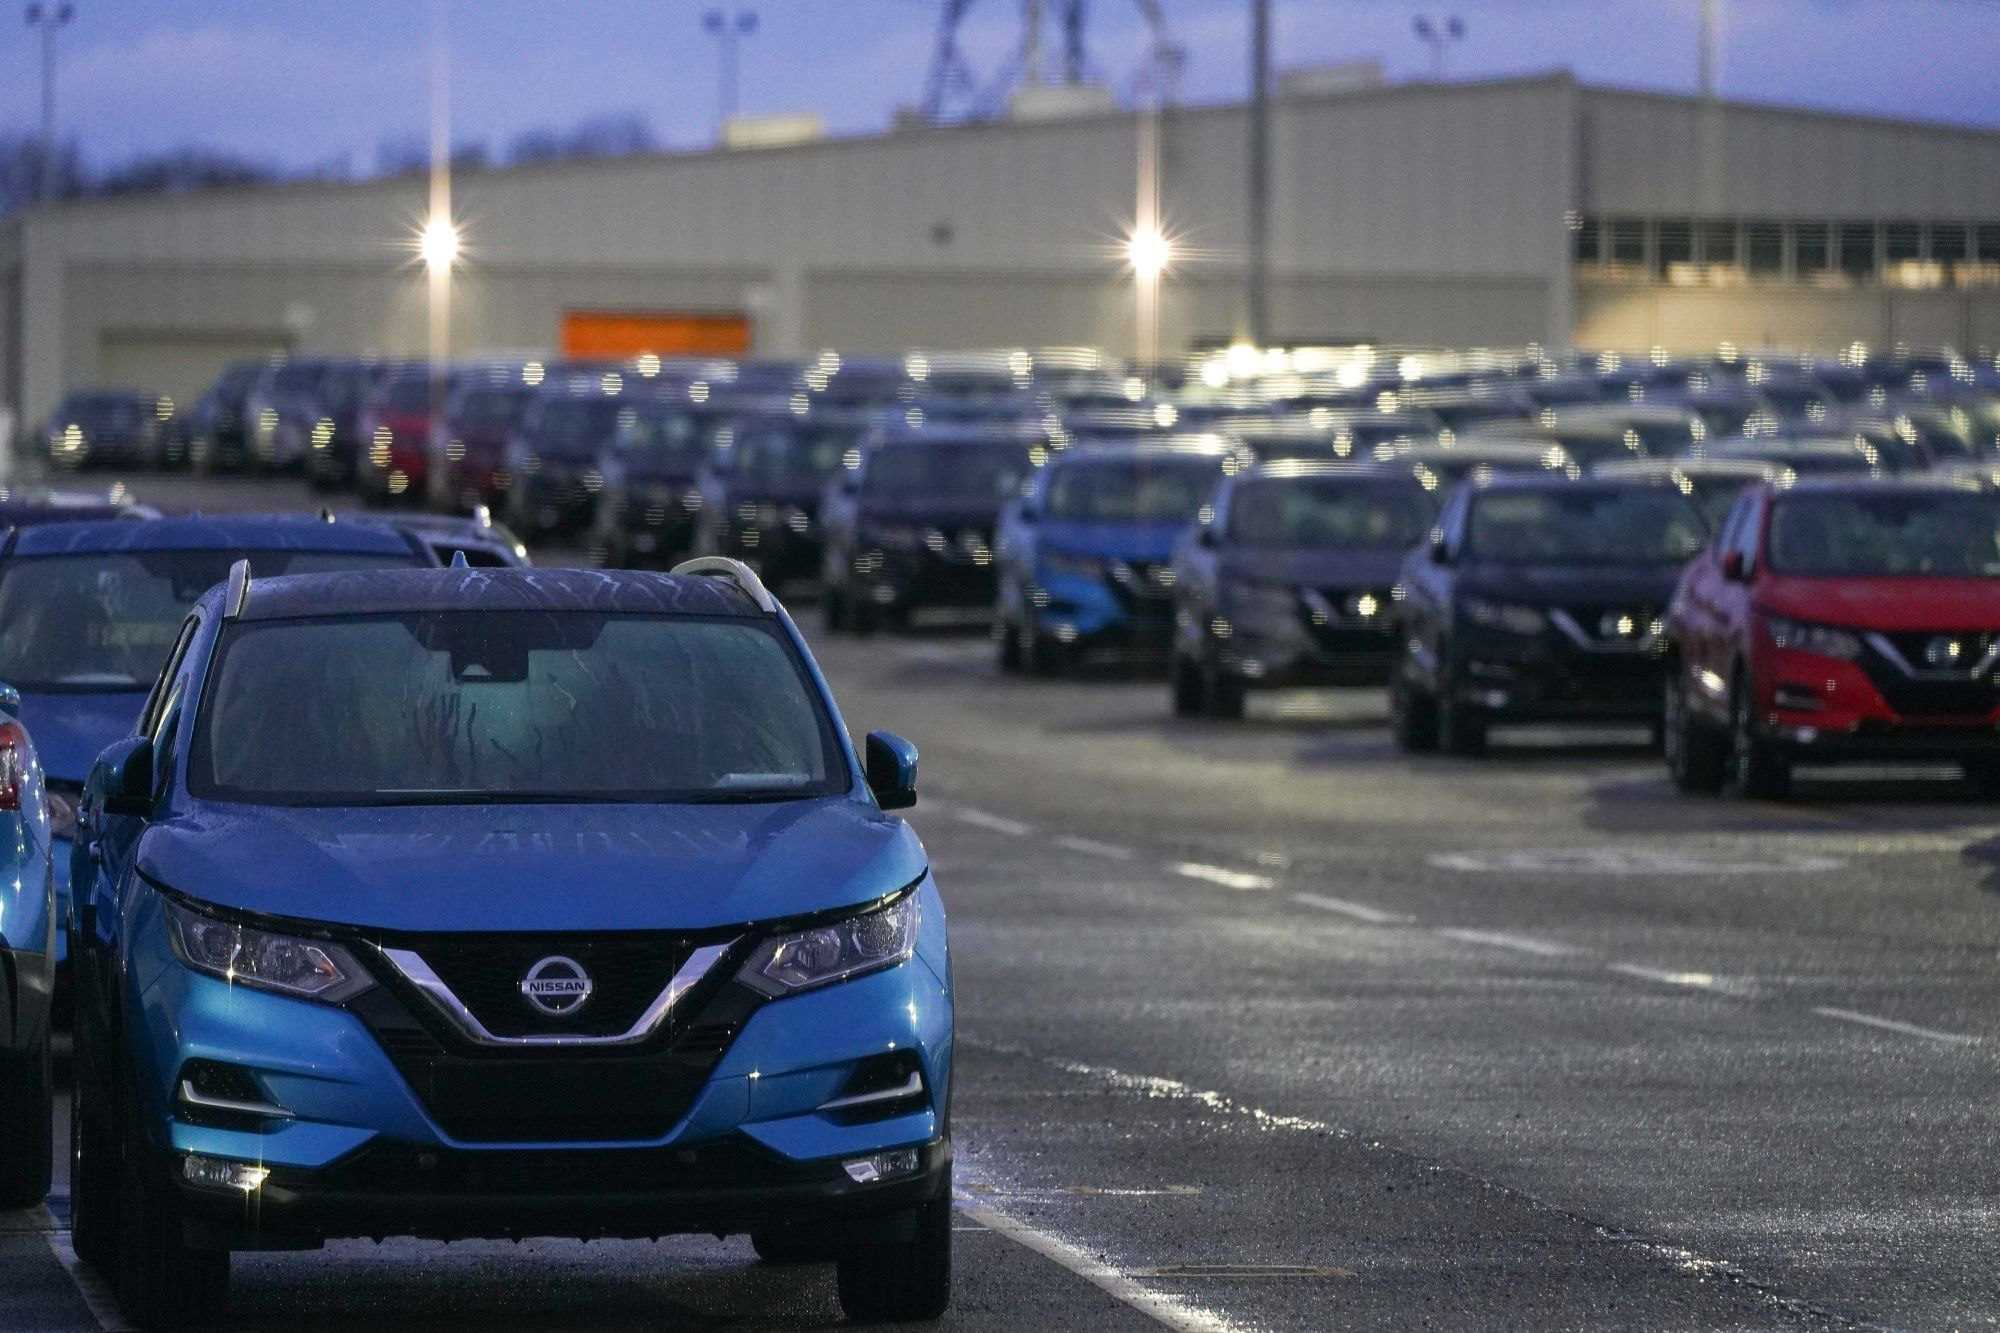 Newly manufactured automobiles parked at the Nissan Motor Co. plant in Sunderland, U.K., on Friday, Dec. 18, 2020. Nissan Motor Co. has opted to ship an upcoming electric vehicle to Europe from Japan rather than produce it in the U.K., where one of its largest factories faces existential risk from a hard Brexit.